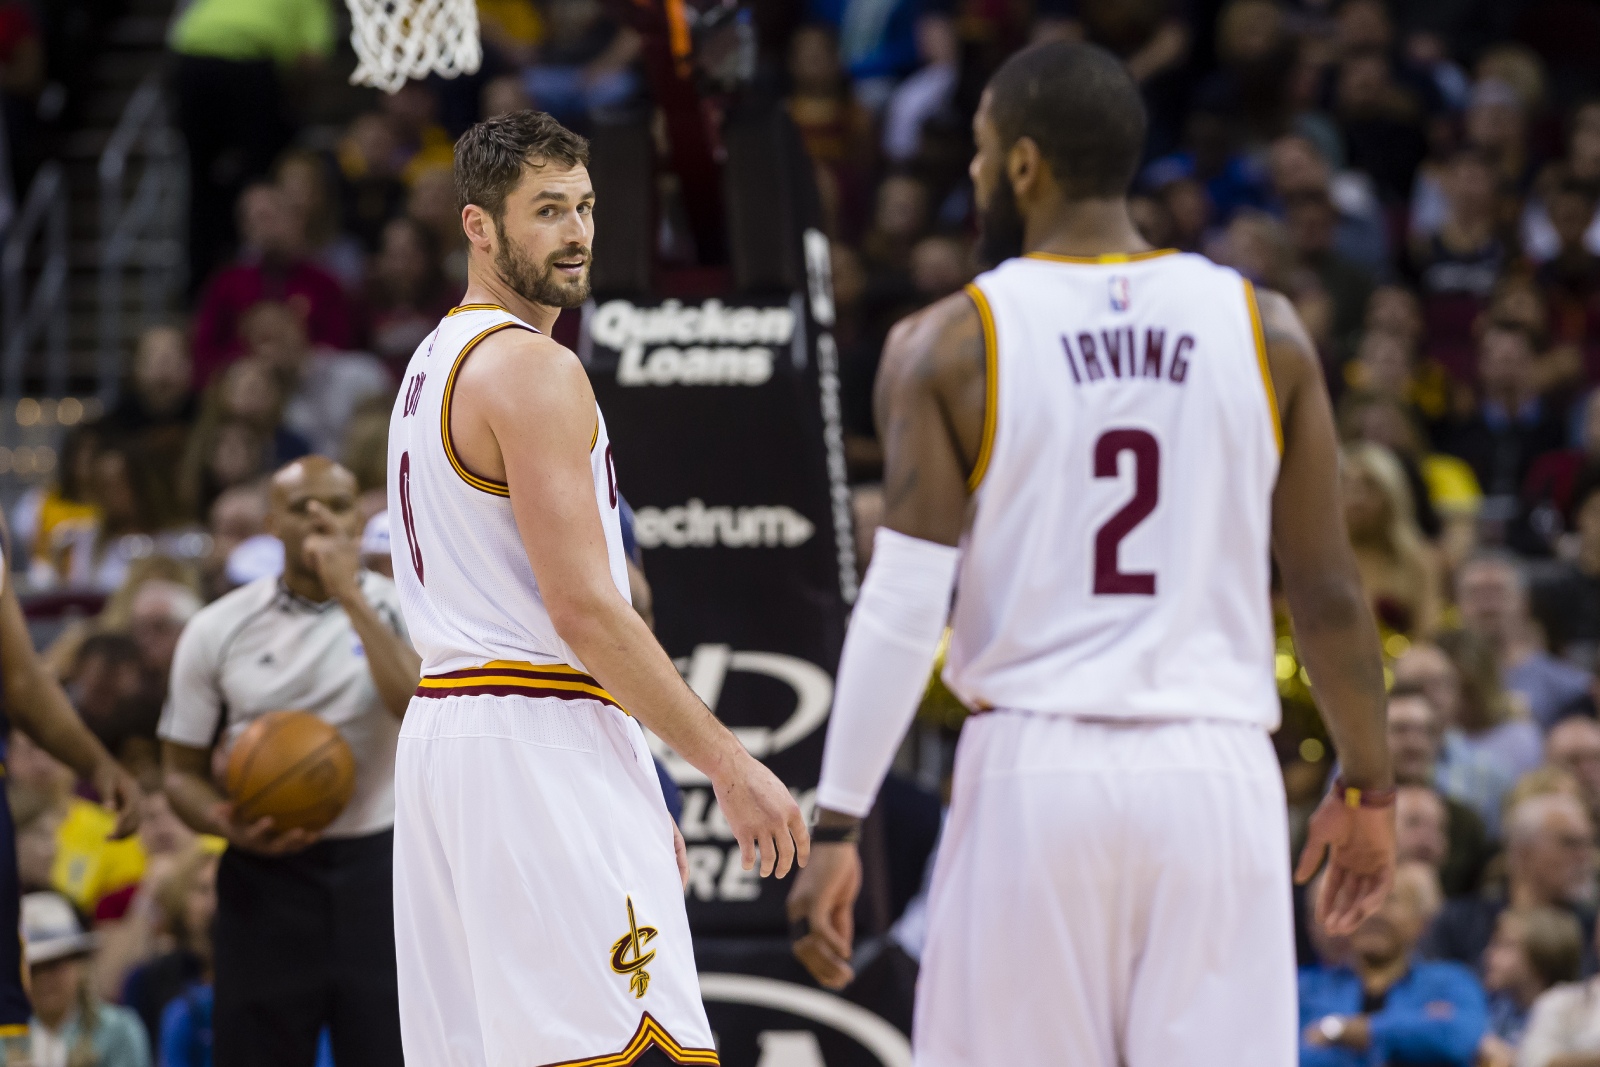 Kevin Love and Kyrie Irving had a ton of success together on the Cavaliers. However, Love was just critical of Irving's recent comments.